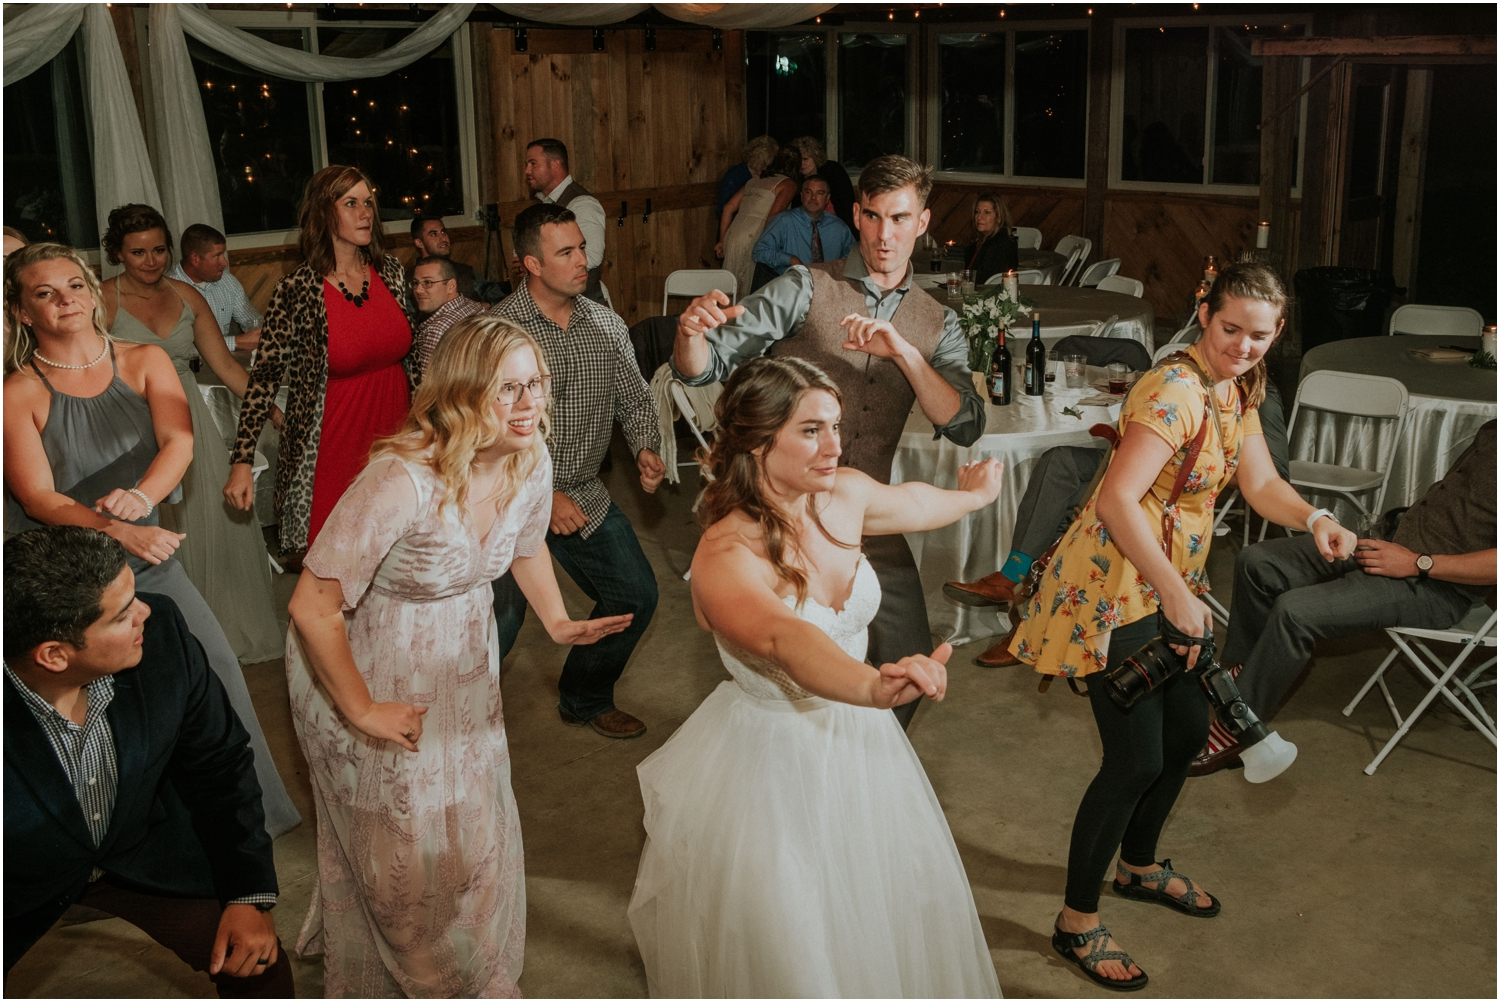 Like I said earlier- I WILL wobble with you at your wedding.